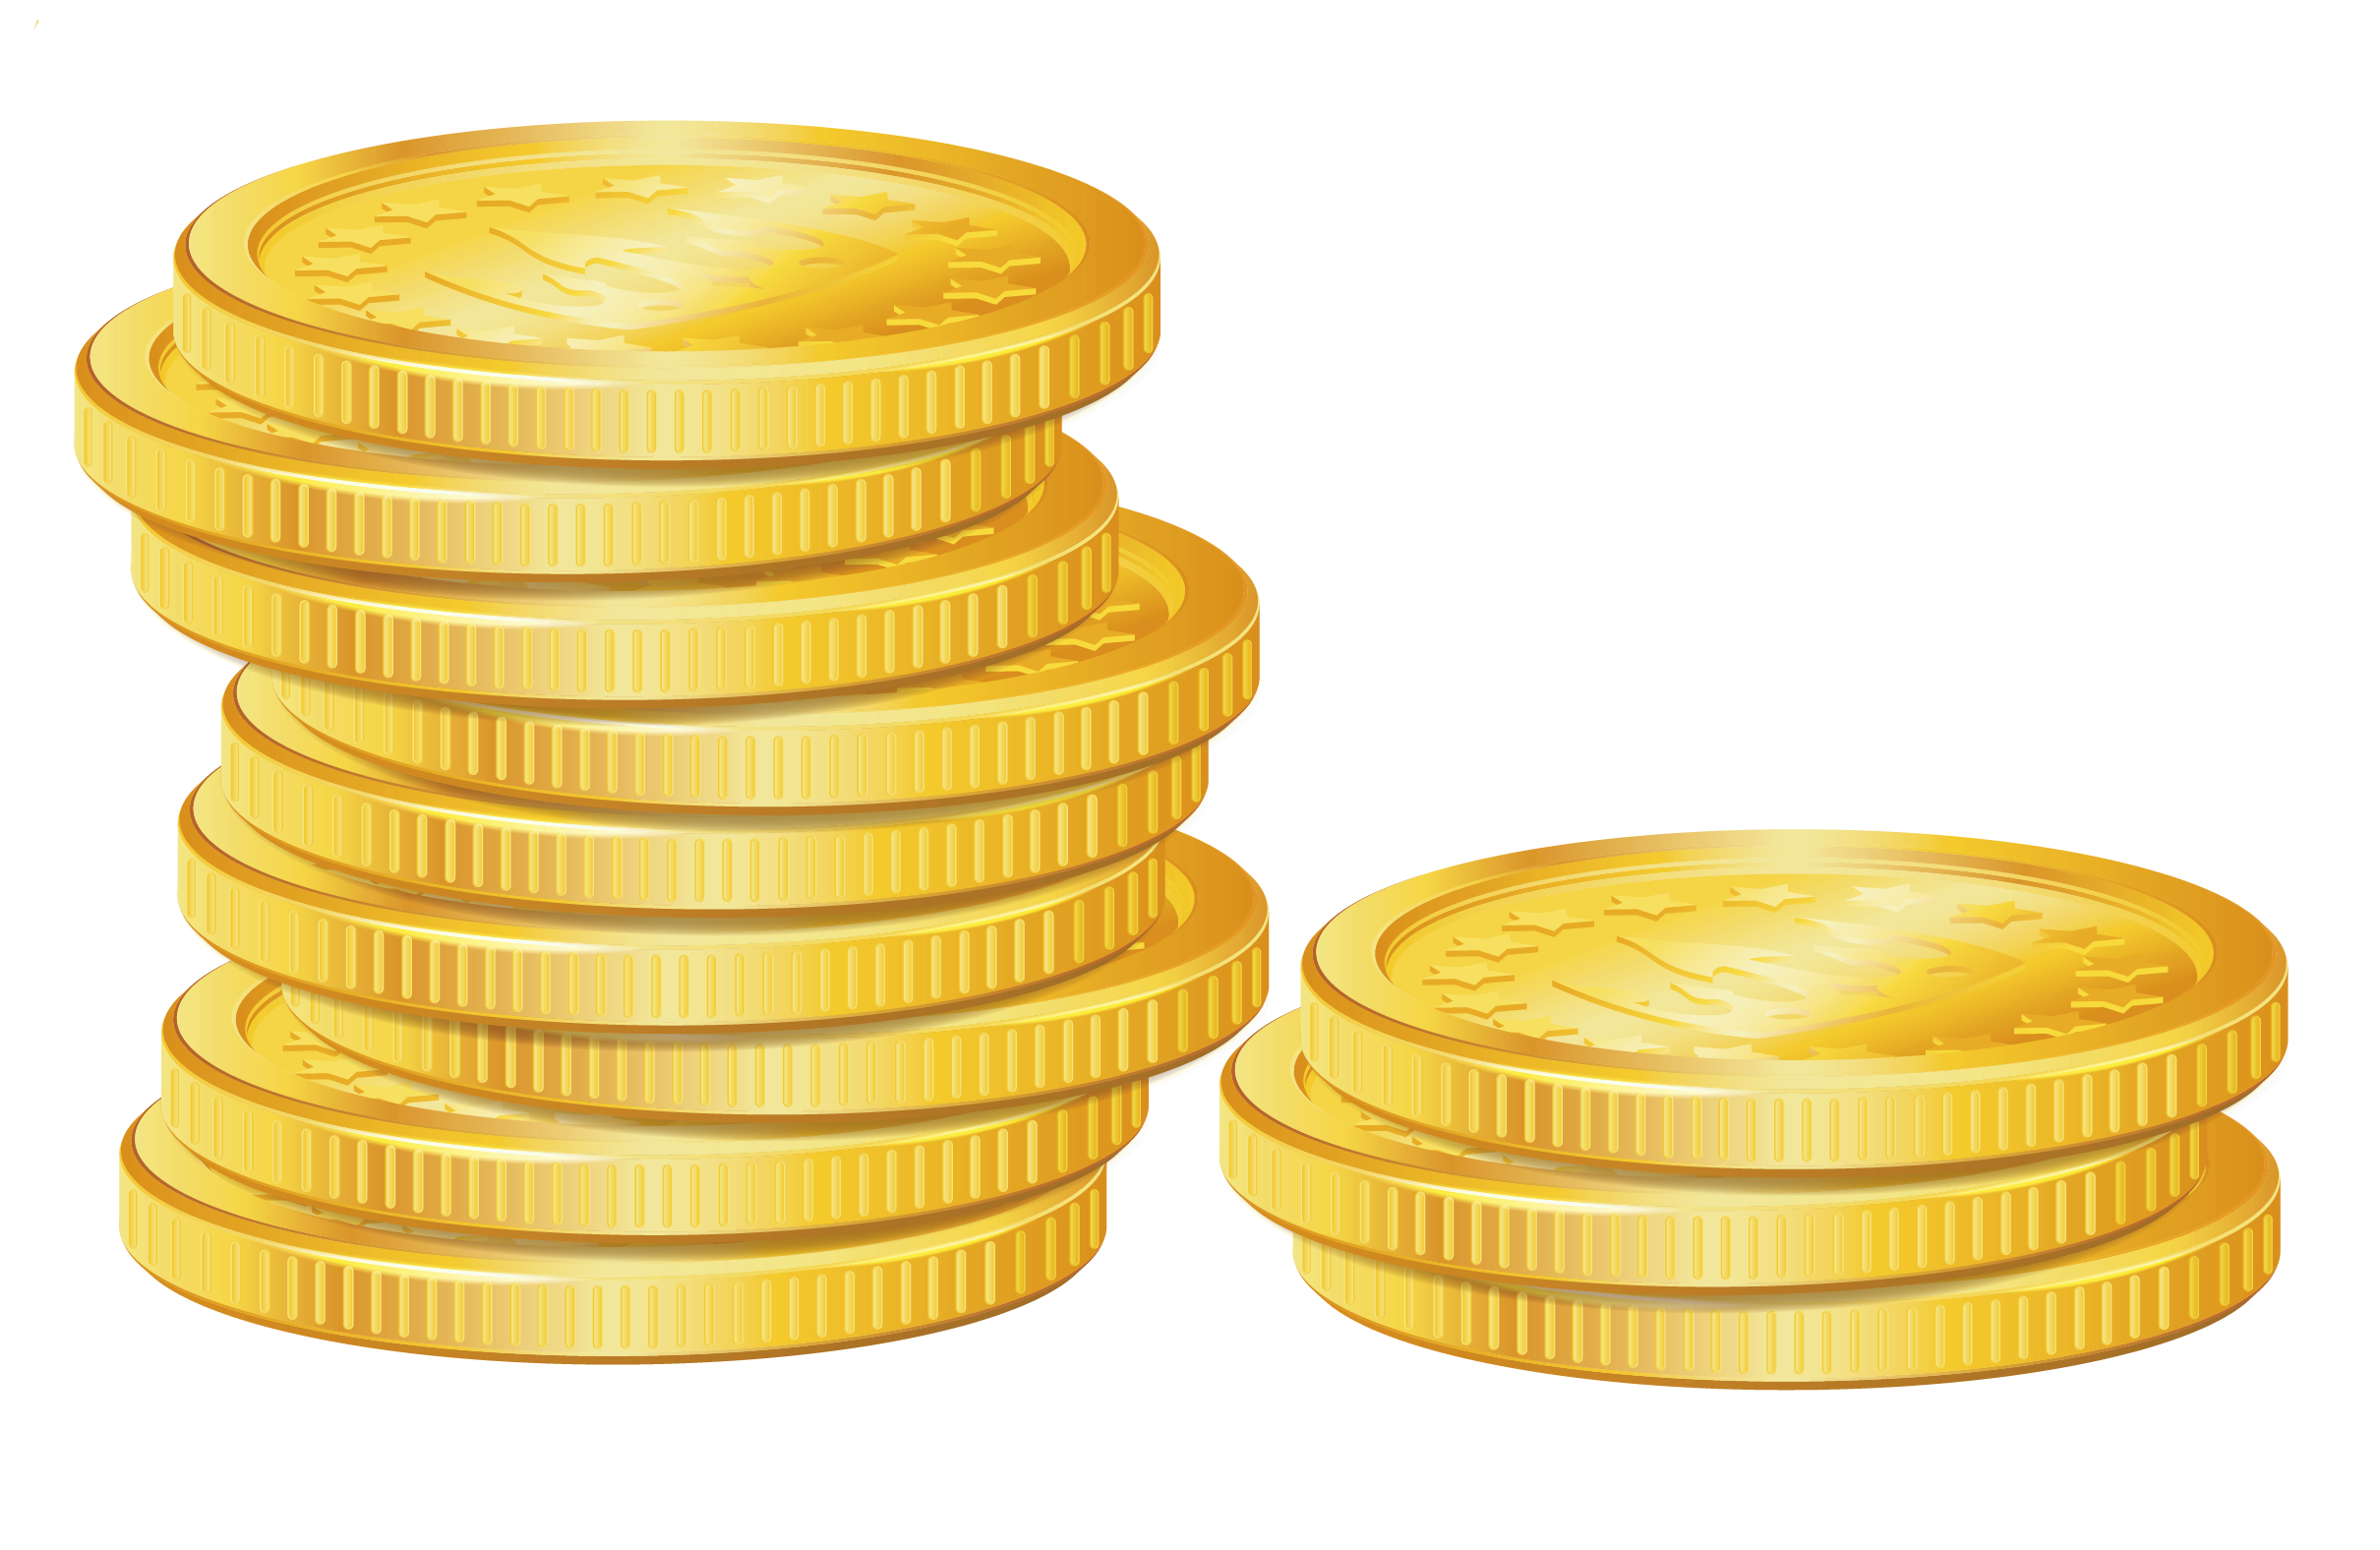 Gold clipart coin. Pile of coins png